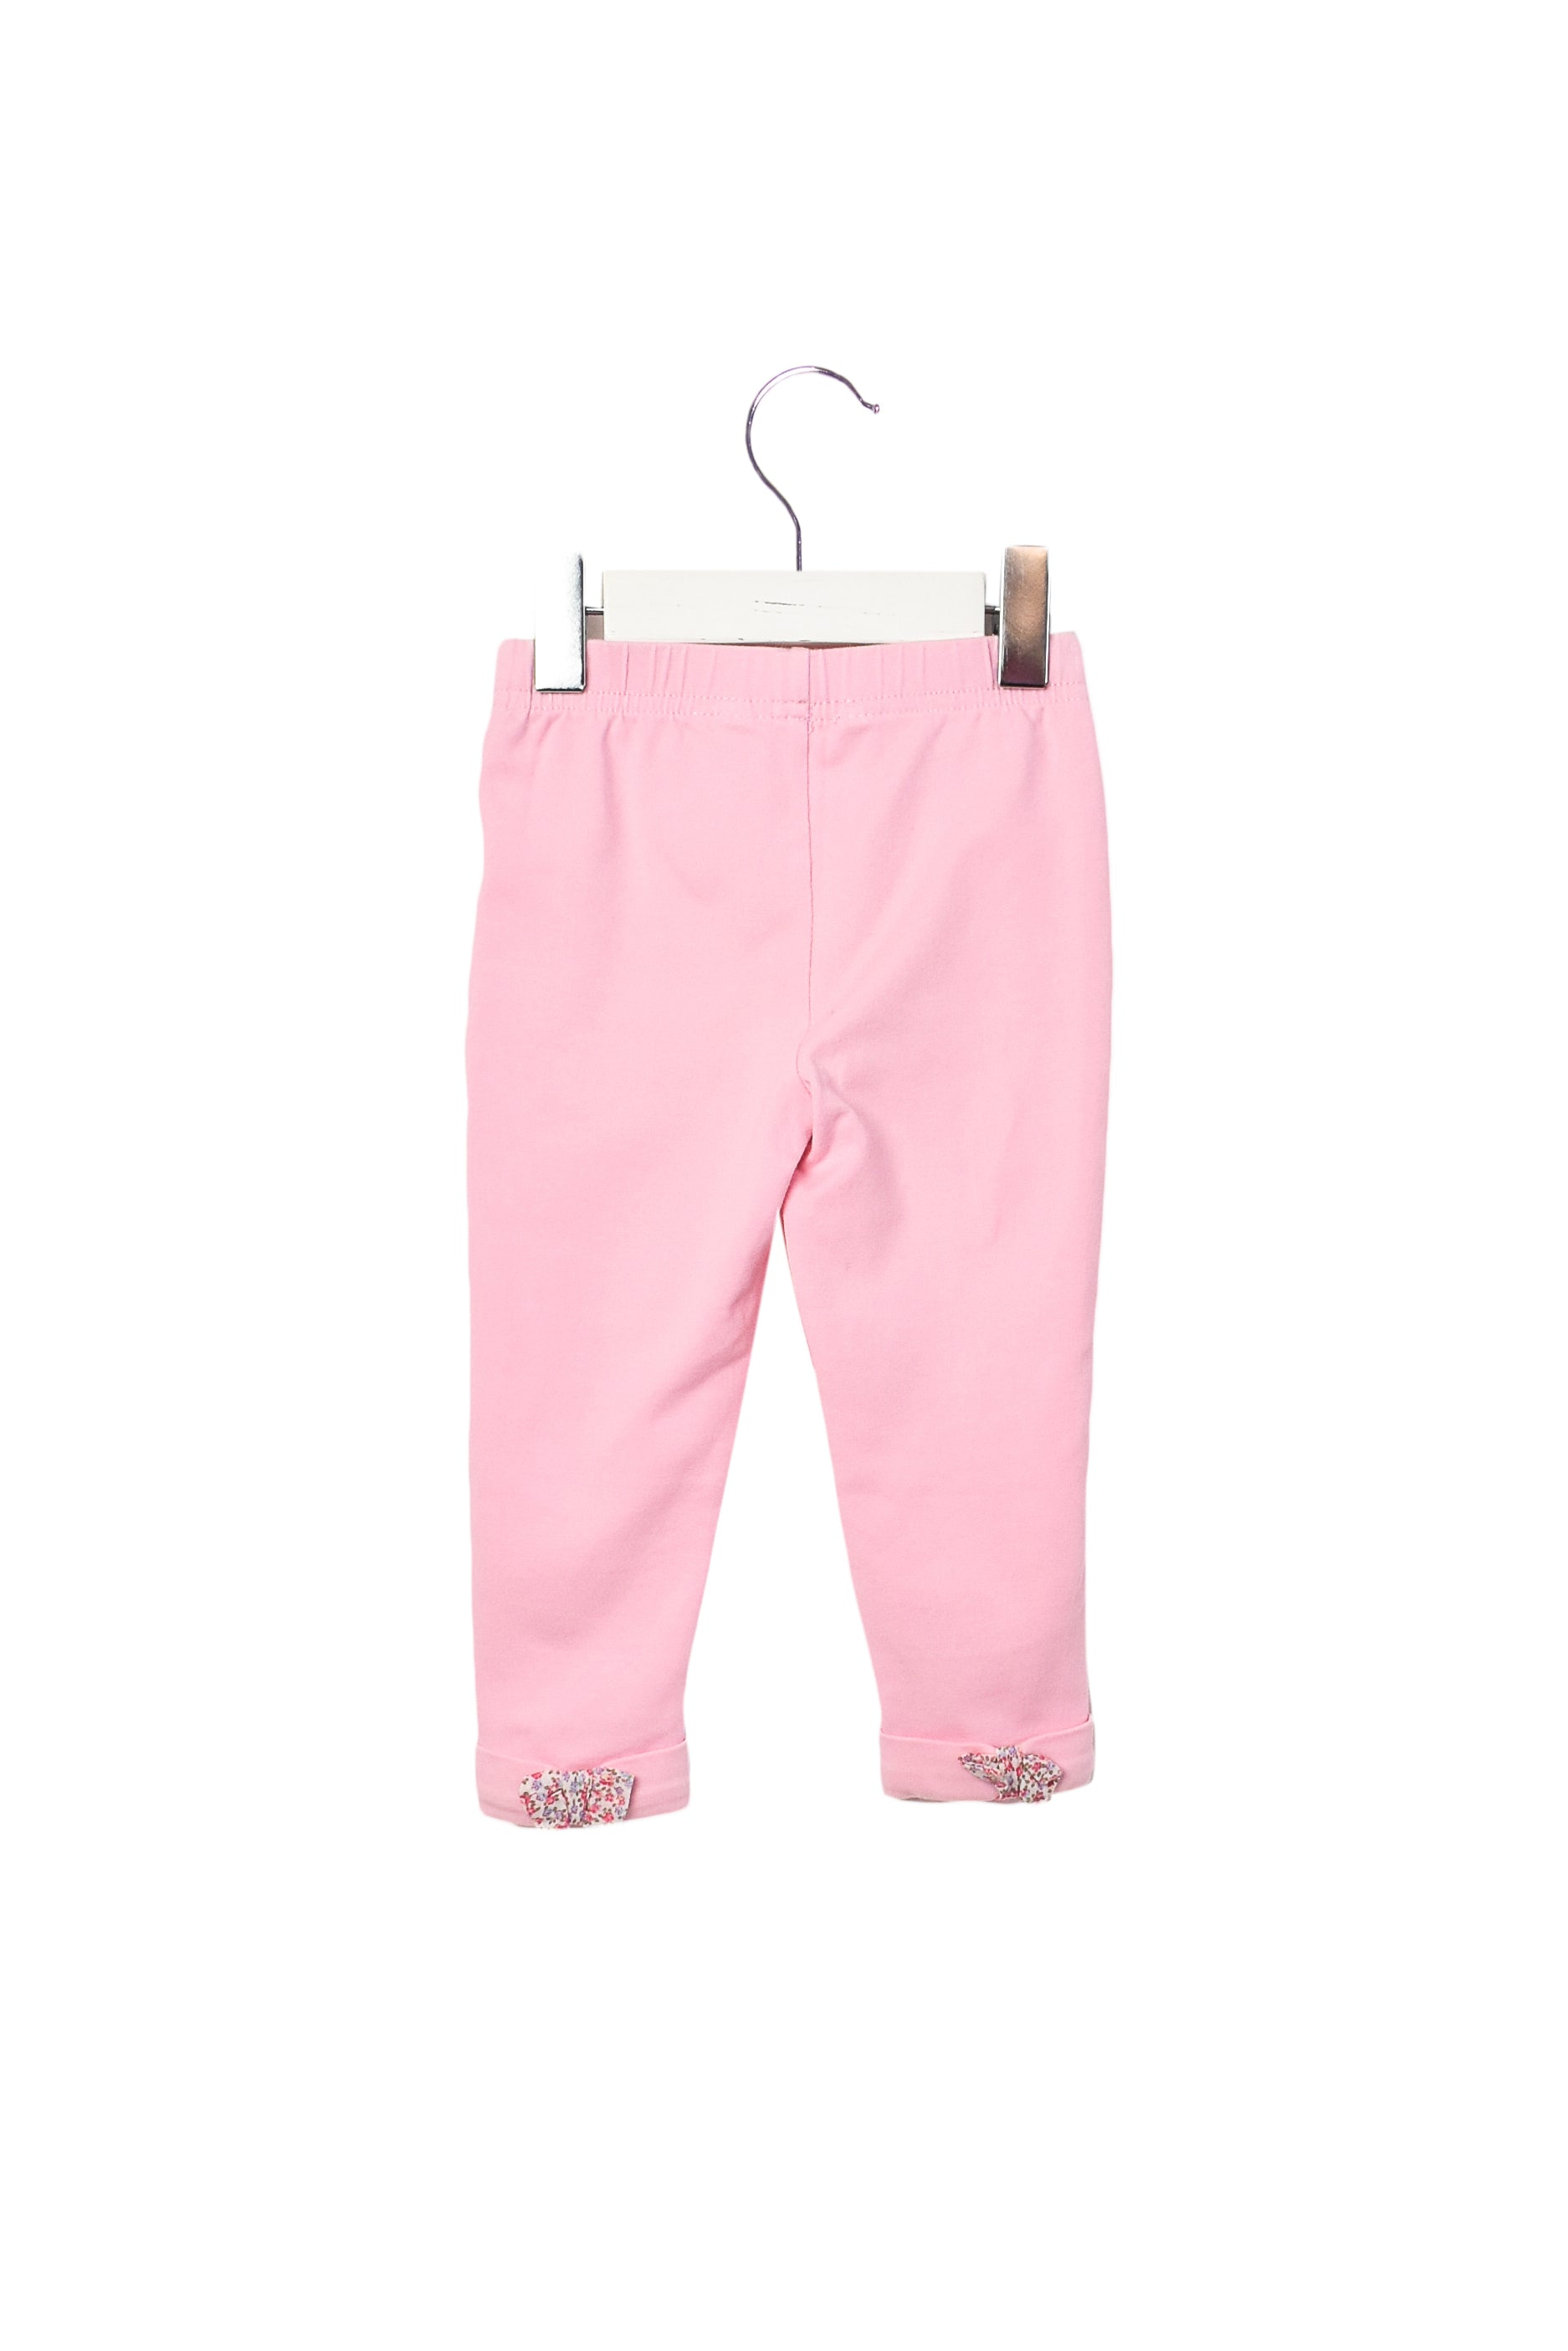 10006674 Ralph Lauren Baby~Leggings 12M at Retykle